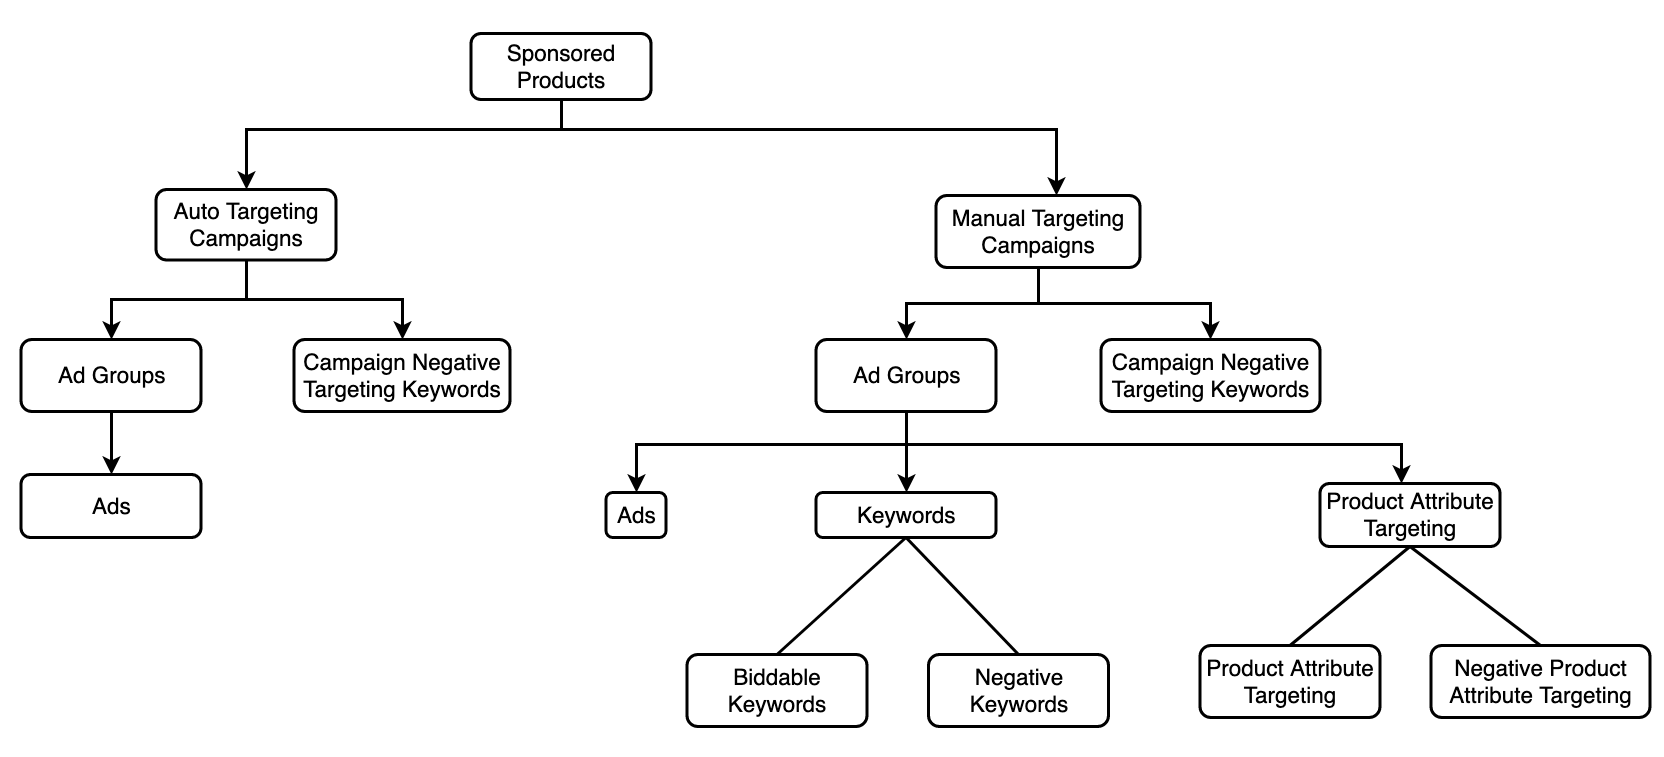 Sponsored Products Entity Hierarchy